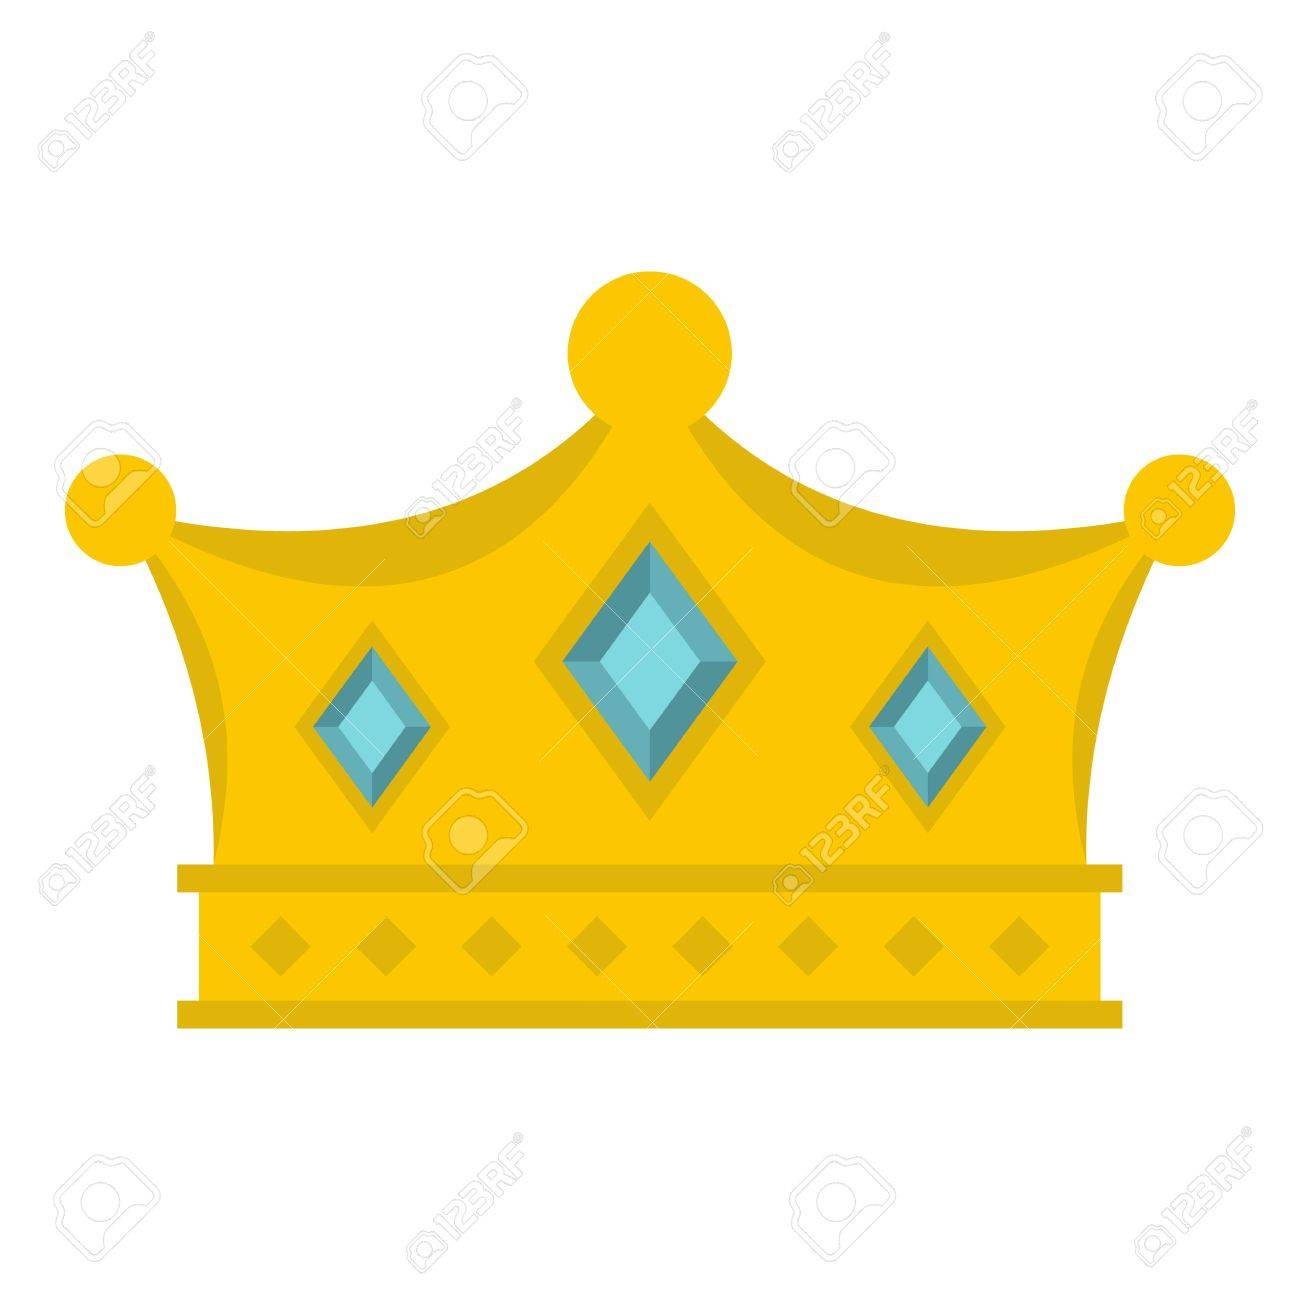 prince crown icon isolated royalty free cliparts vectors and stock